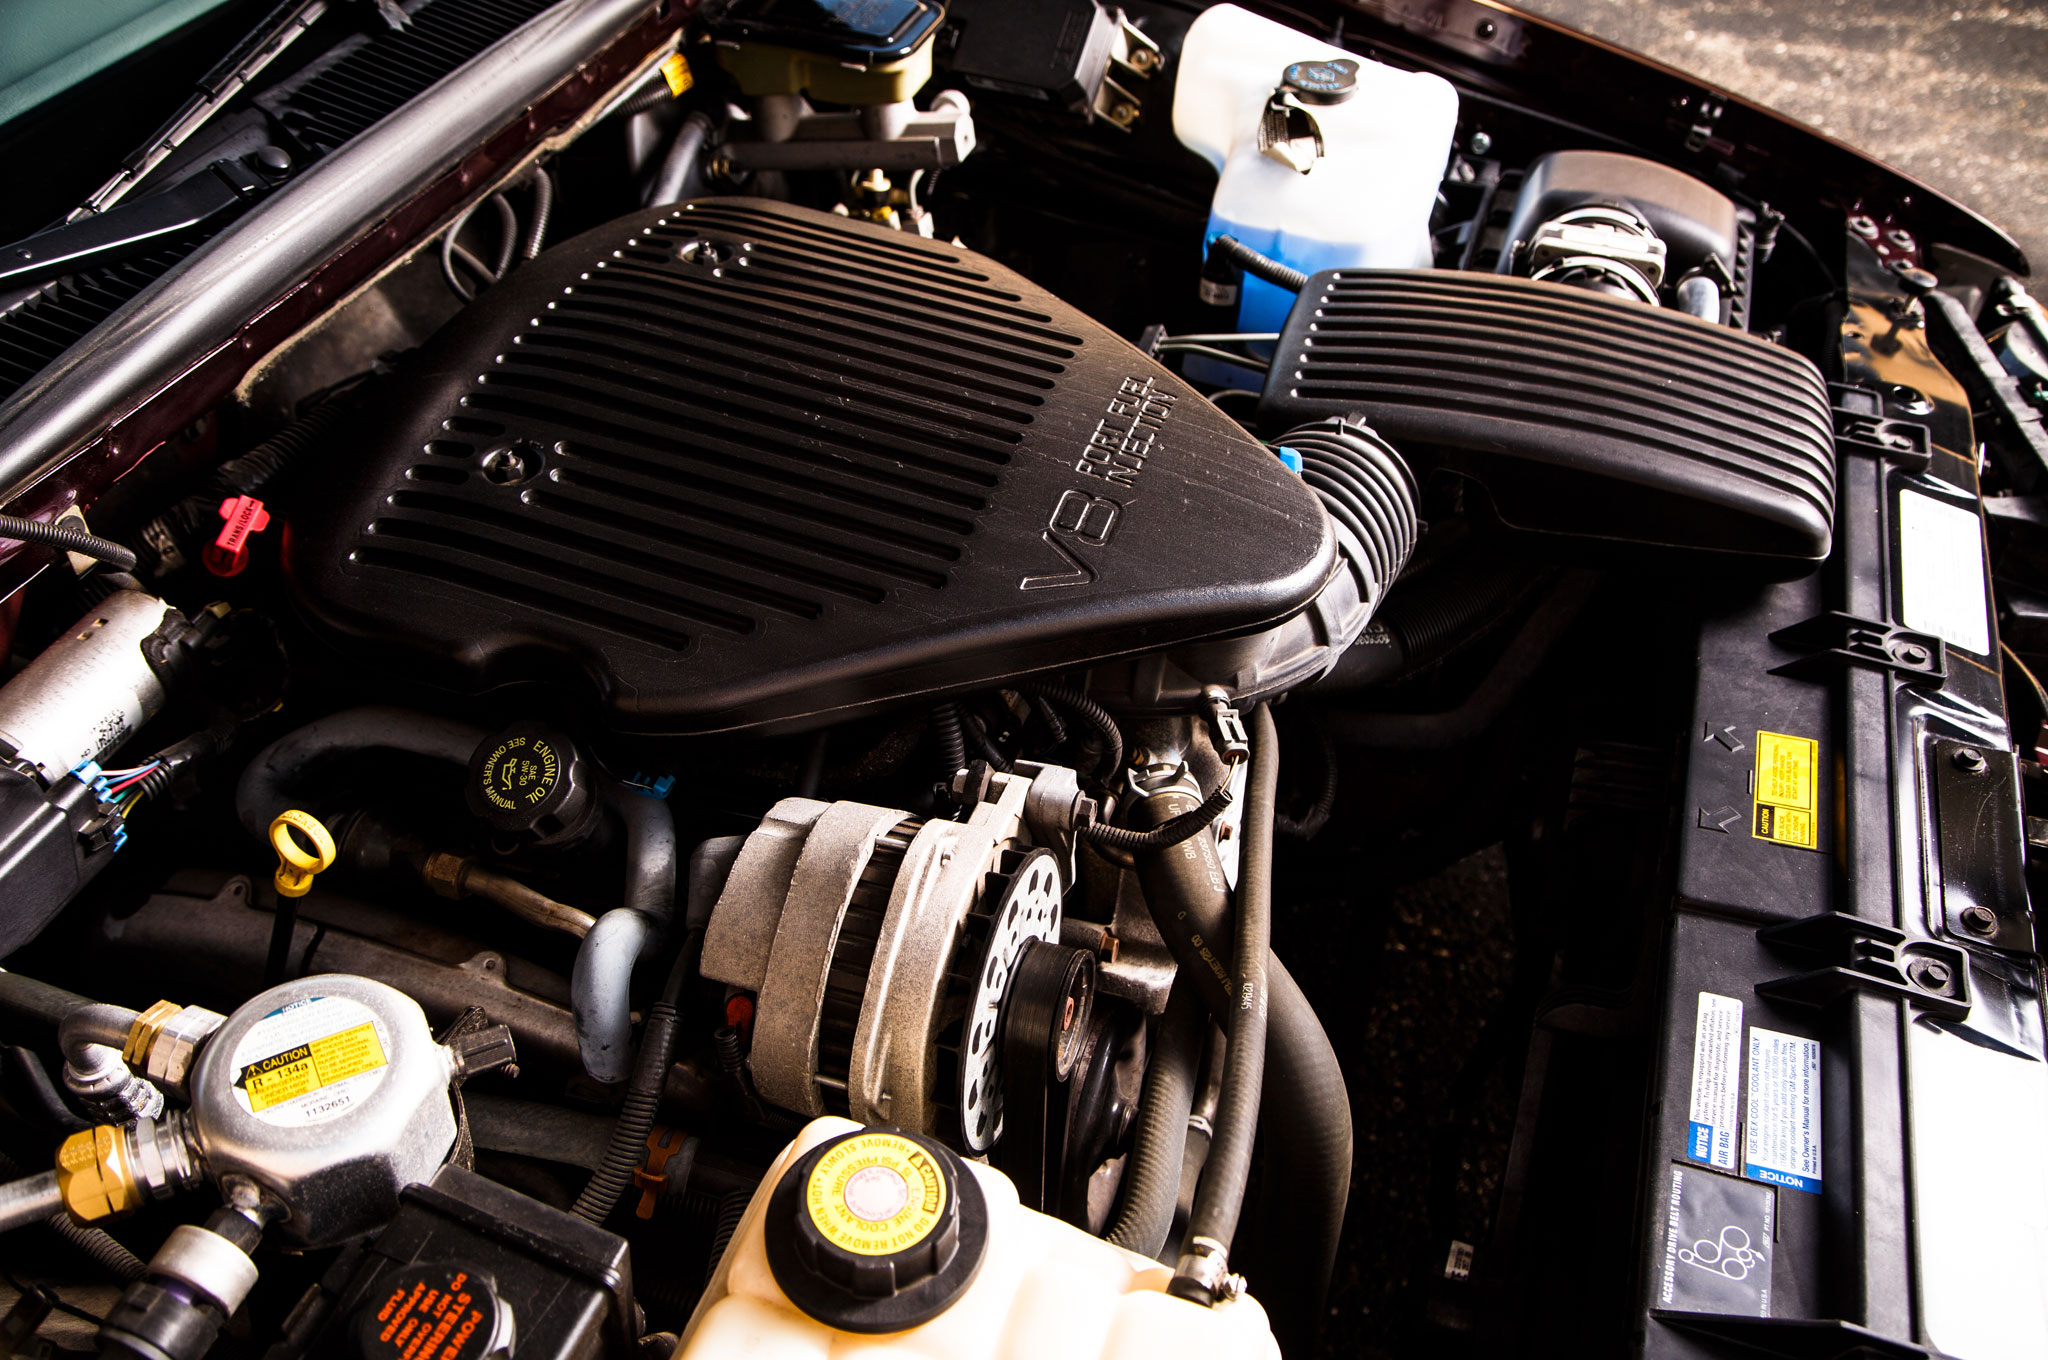 The 5.7-liter LT1 V-8 doesn't put out big numbers, but hot rod parts are widely available.